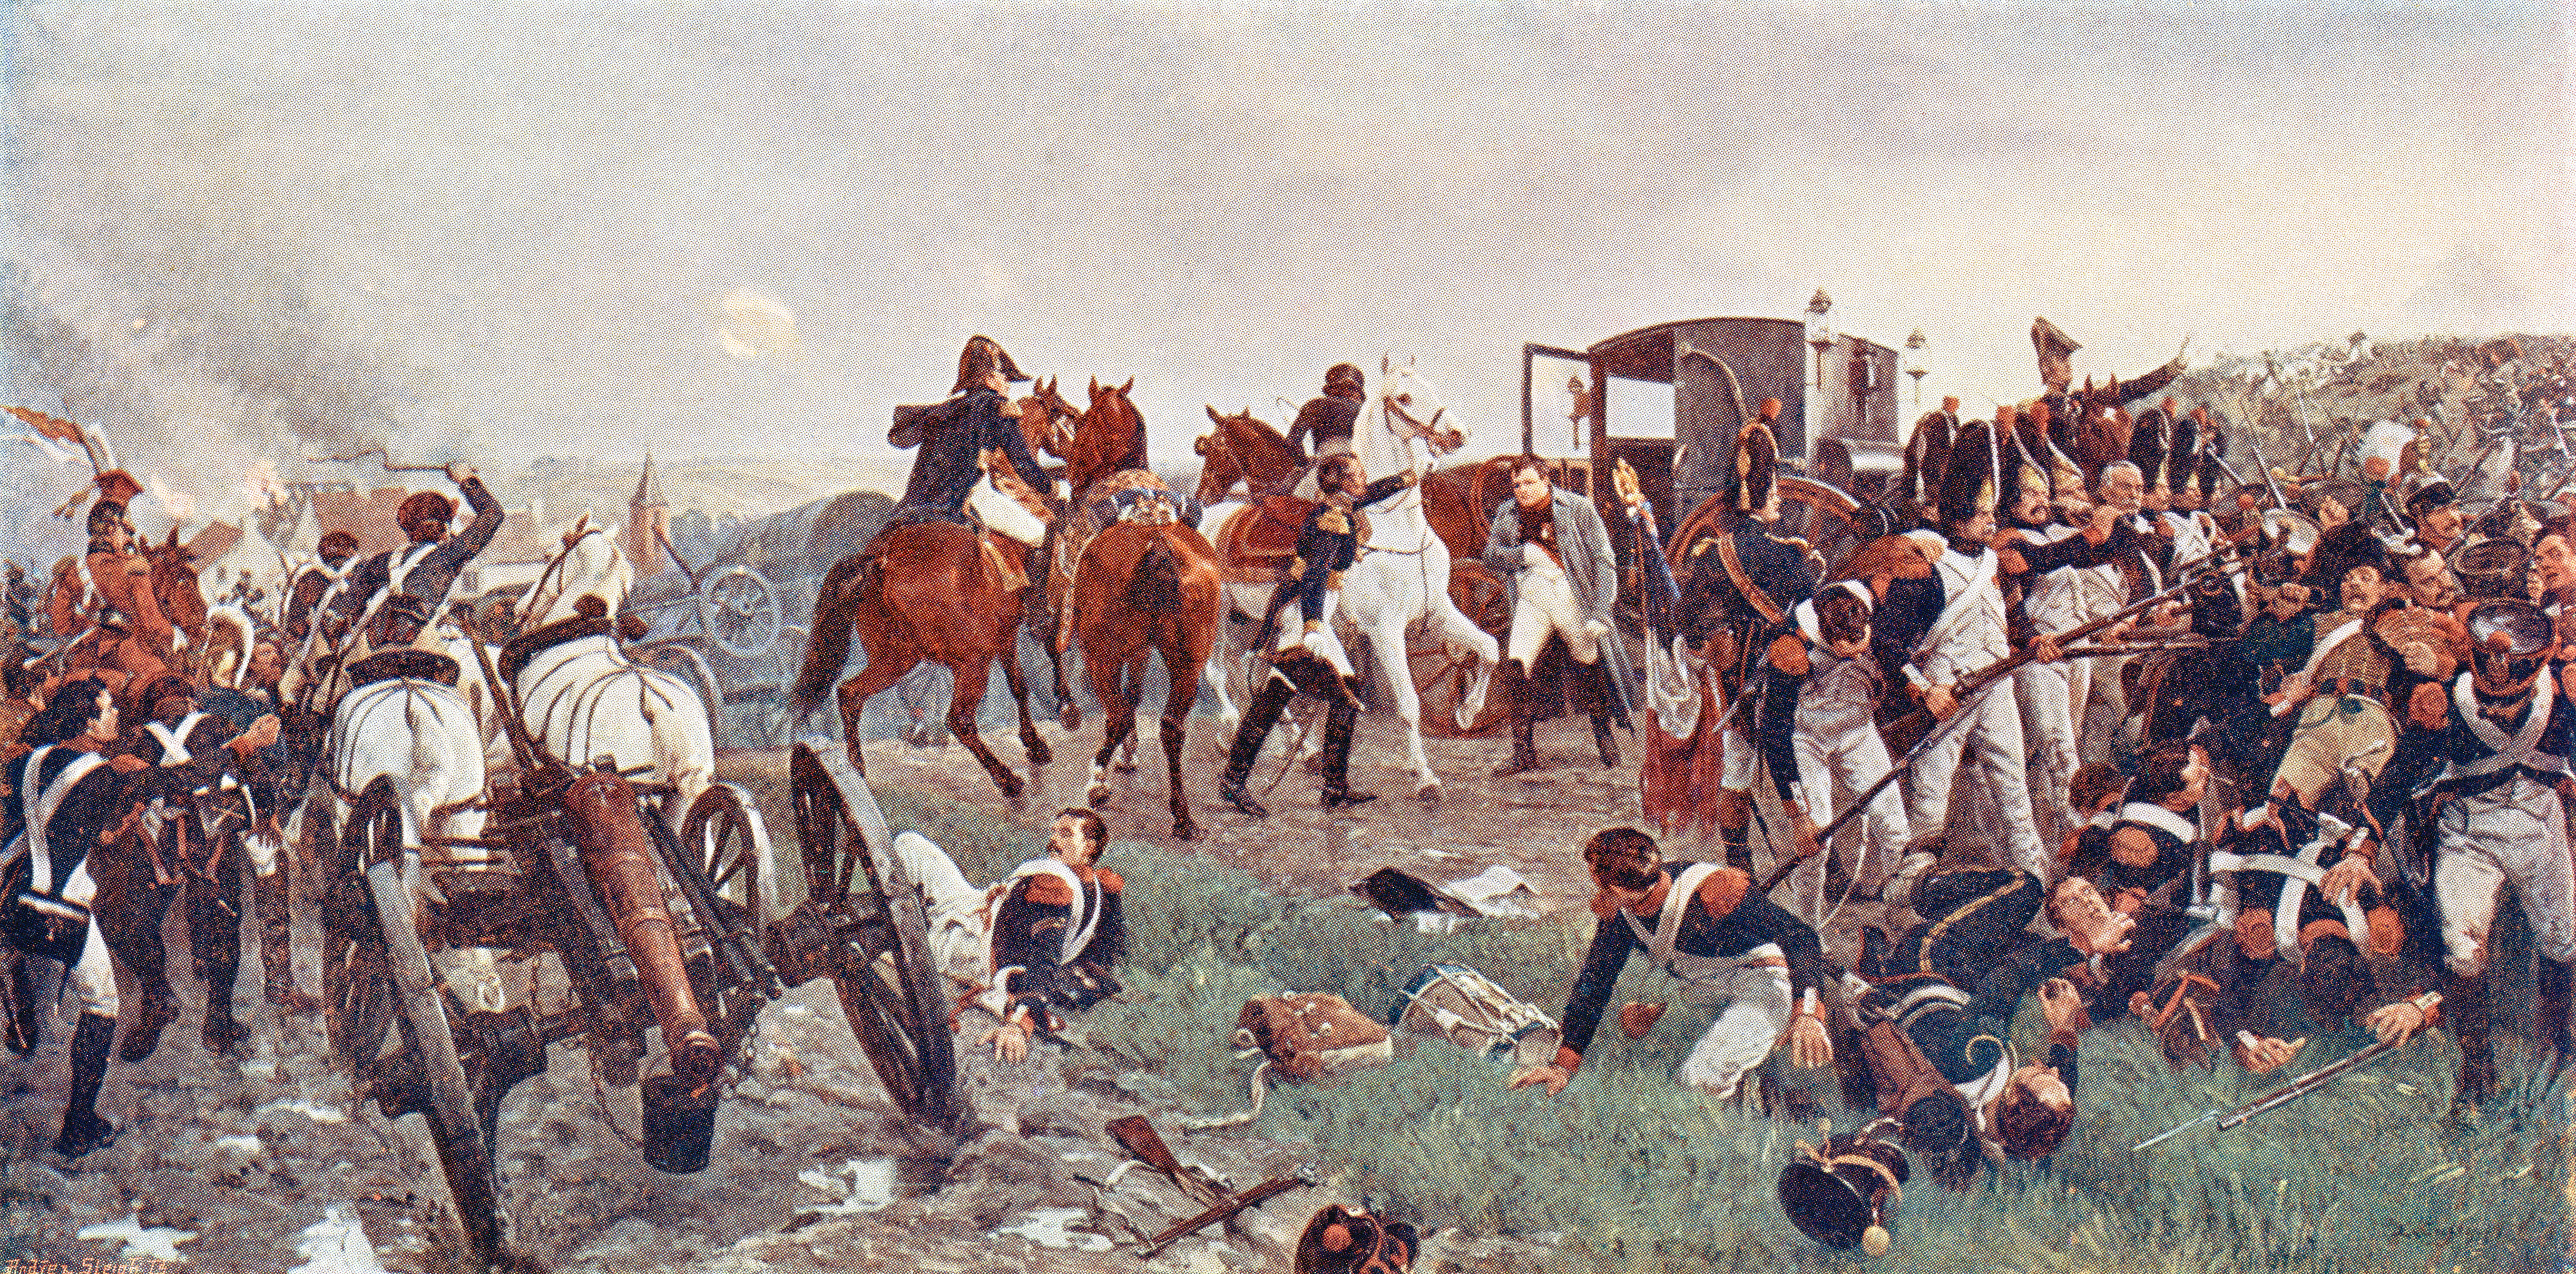 """The painting """"On the Evening of the Battle of Waterloo,"""" by Ernest Crofts"""